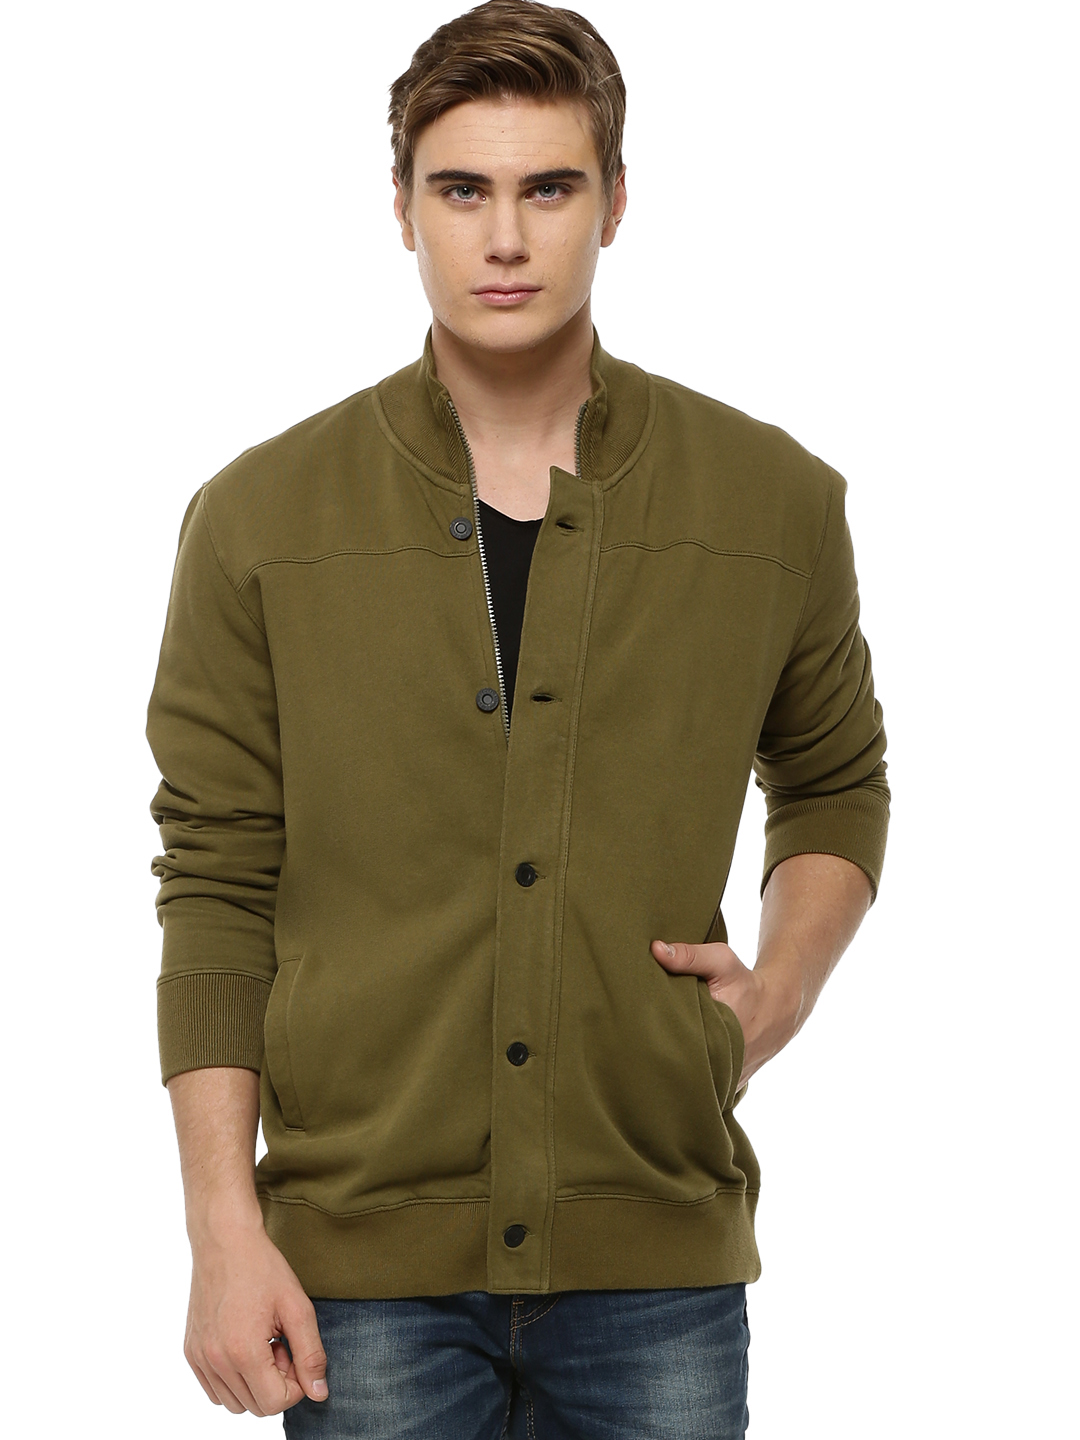 Levi's Greens Zippered Jacket With Rib Collar 1